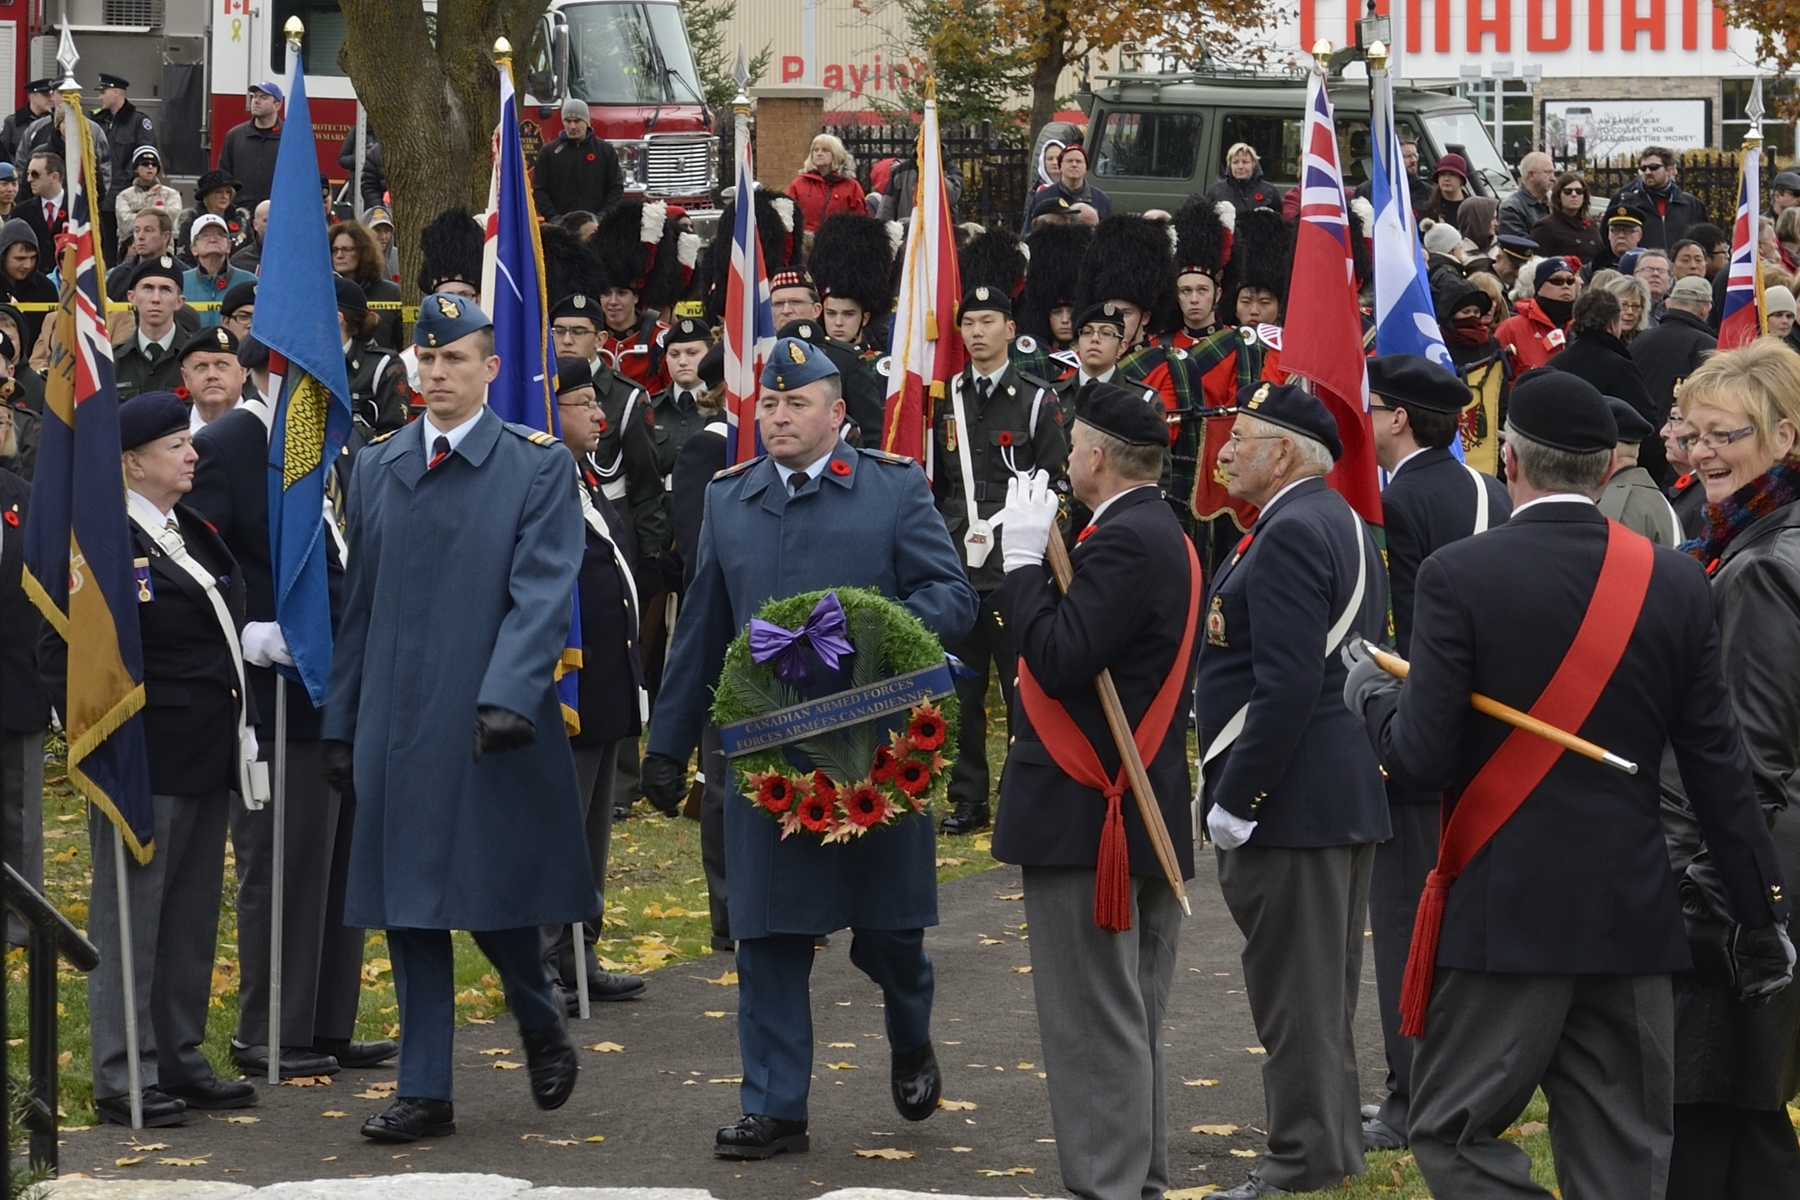 Accompanied by Warrant Officer John Meaney (left), Captain Kyle Pilatzke prepares to lay a wreath on behalf of the Canadian Armed Forces during the Remembrance Day parade in Aurora, Ontario, on November 11, 2014. PHOTO: MCpl Miranda Langguth